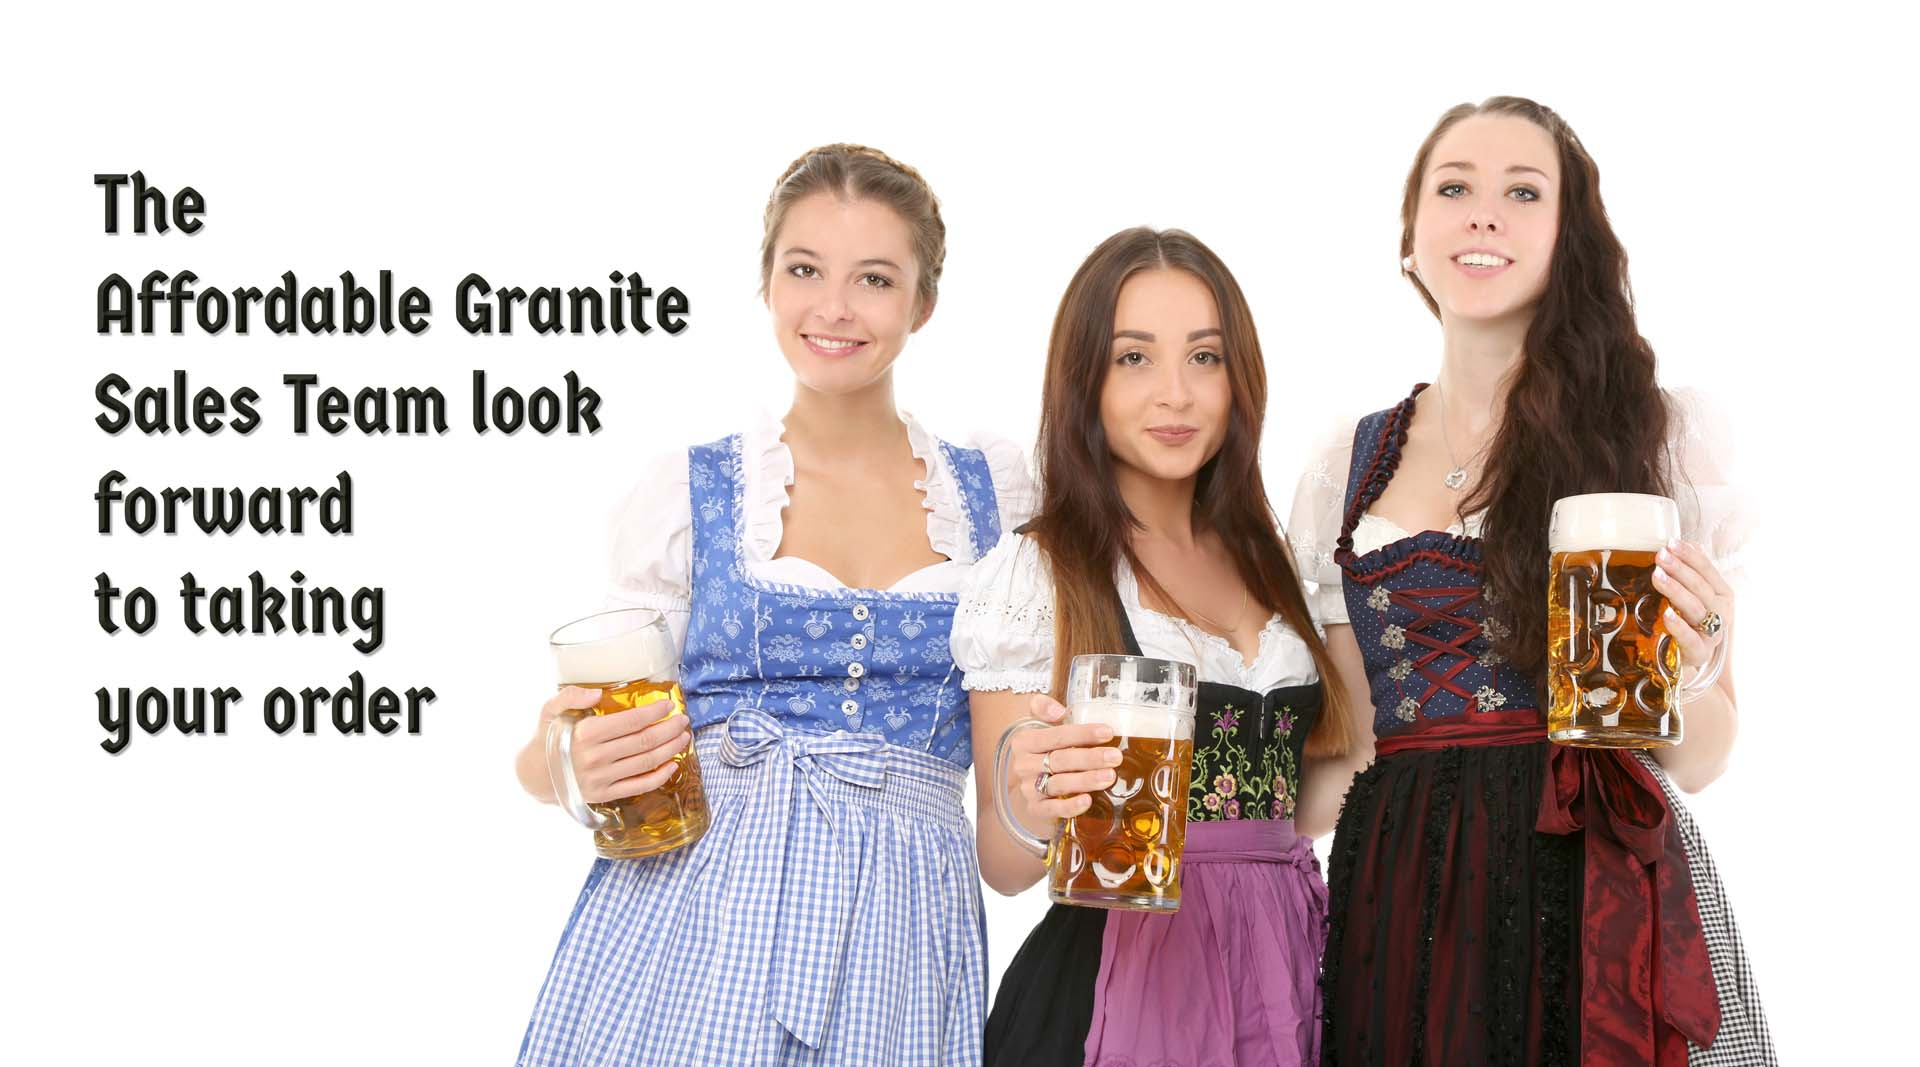 worktops special offer oktoberfest october november 2020 quartz granite worktops man-group-girl-woman-isolated-friendship-1281992-pxhere.com a